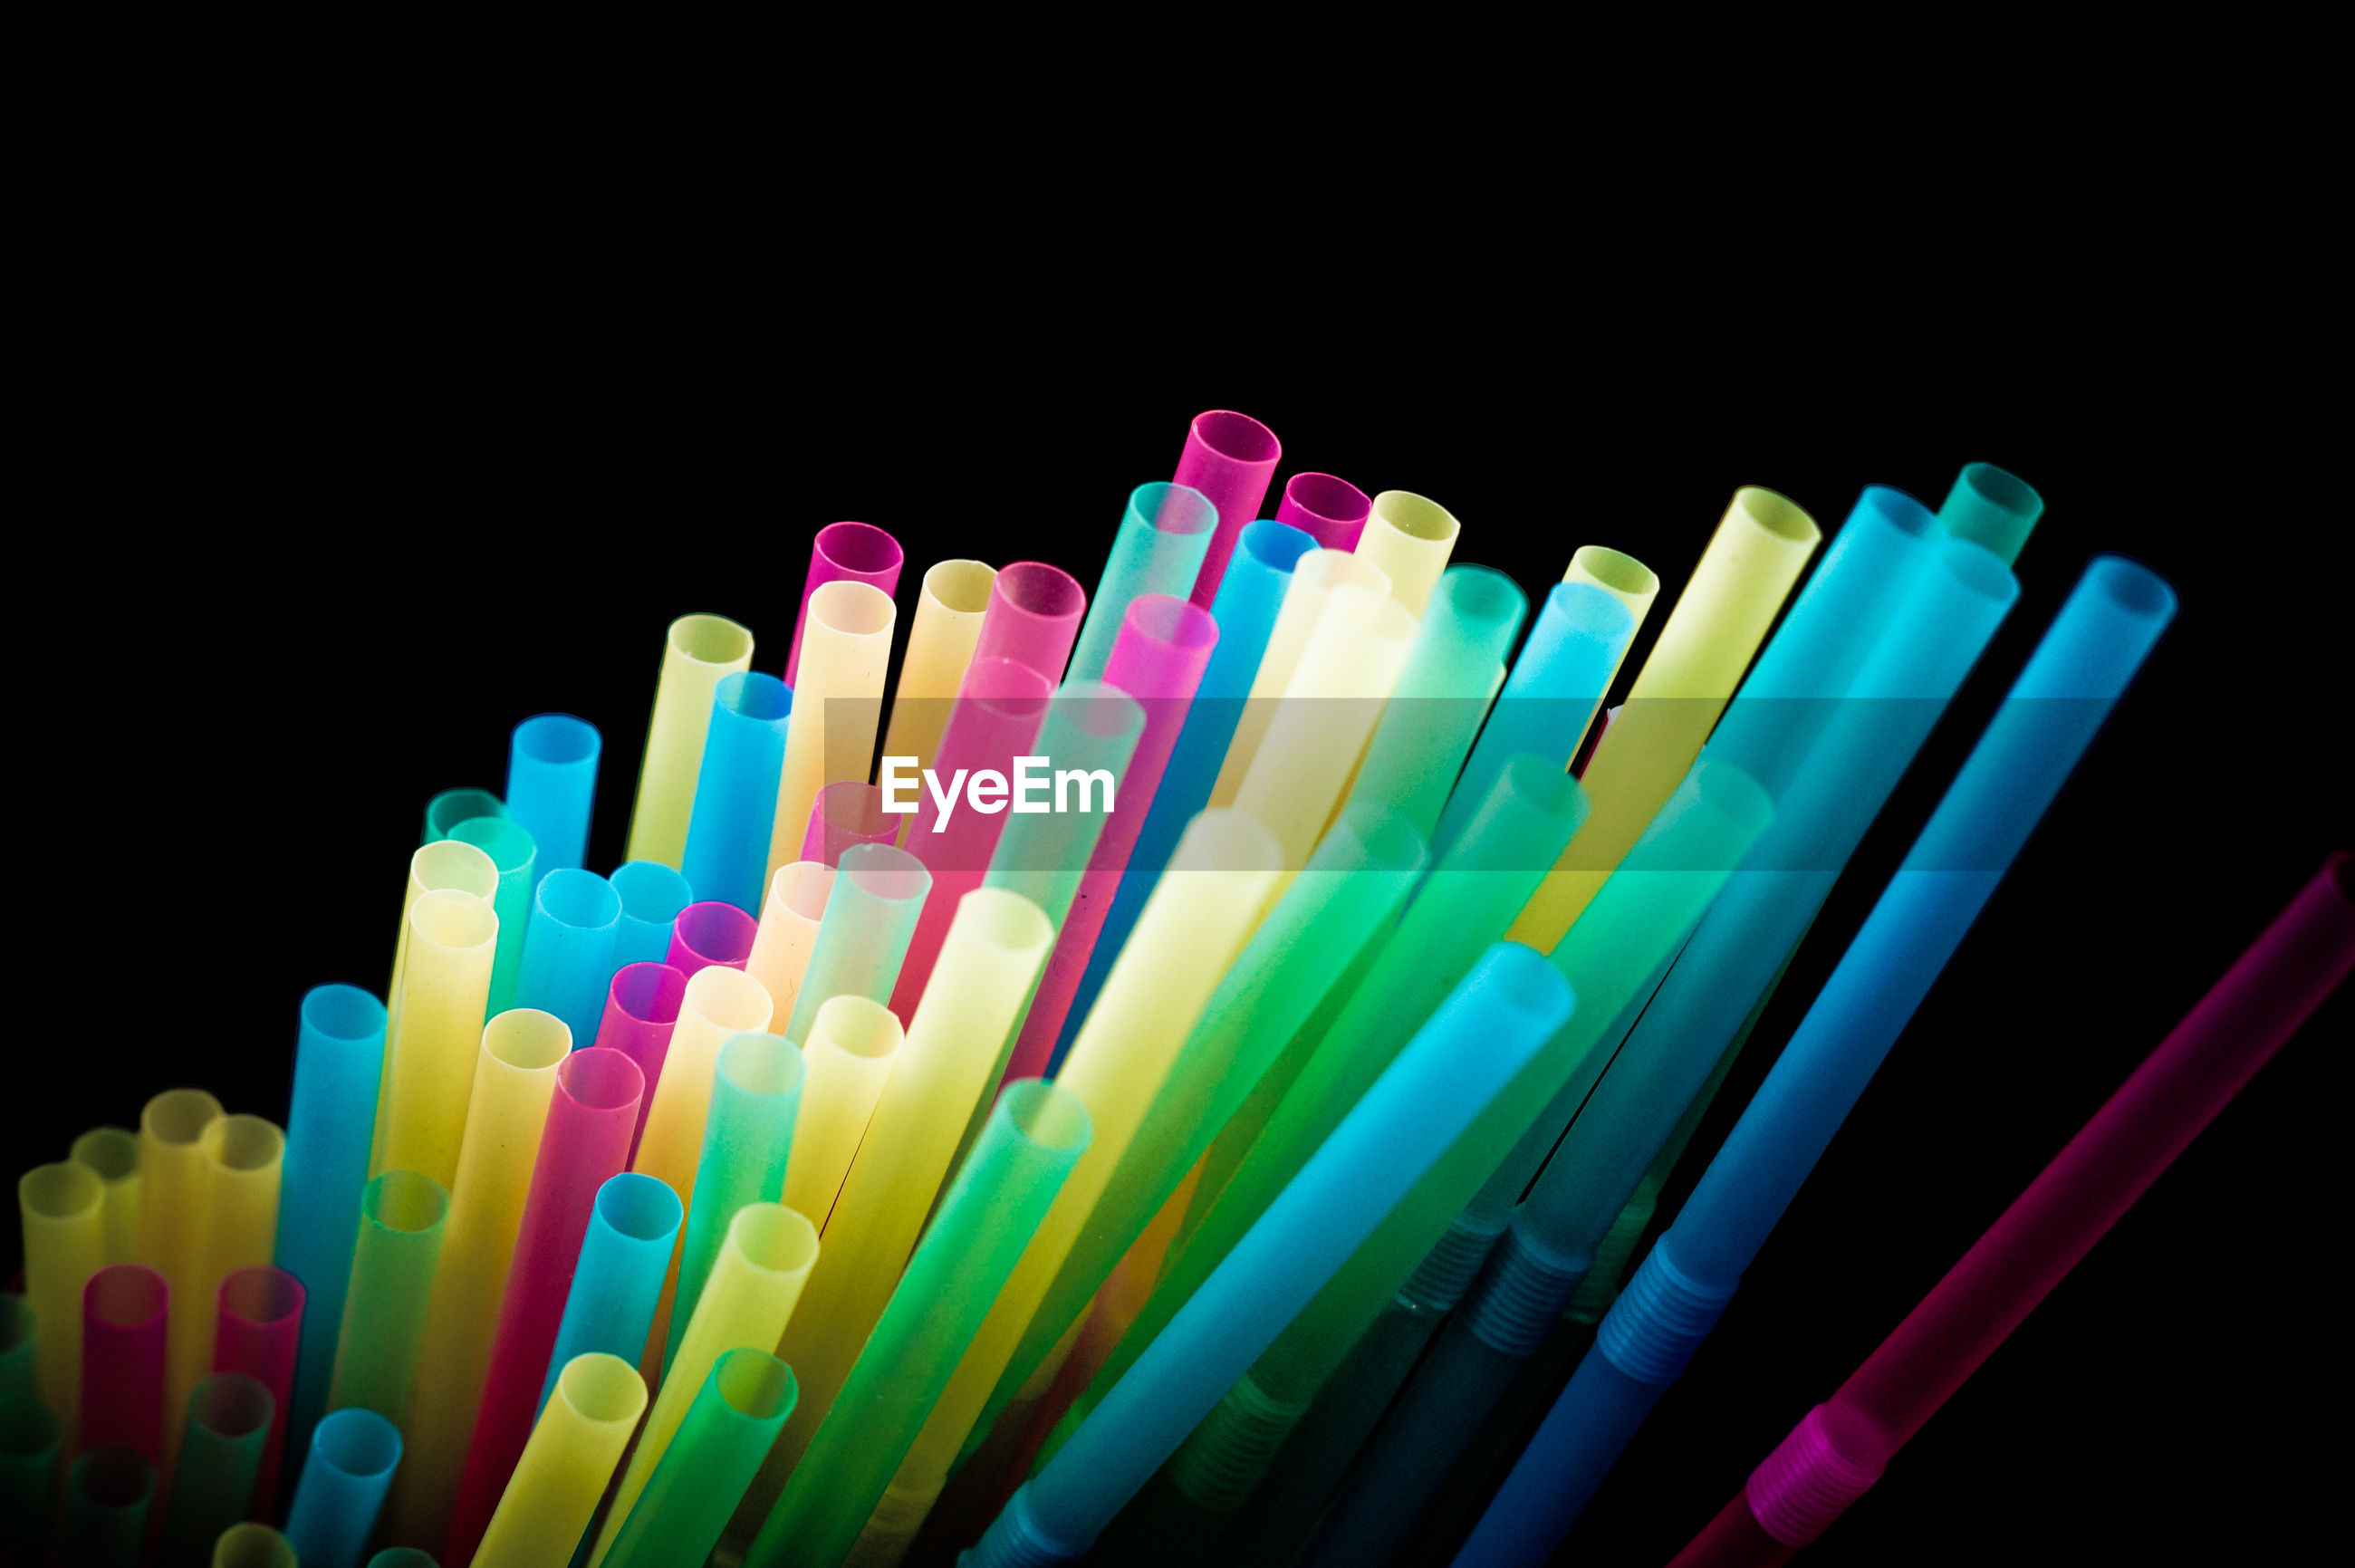 Close-up of colorful drinking straws against black background